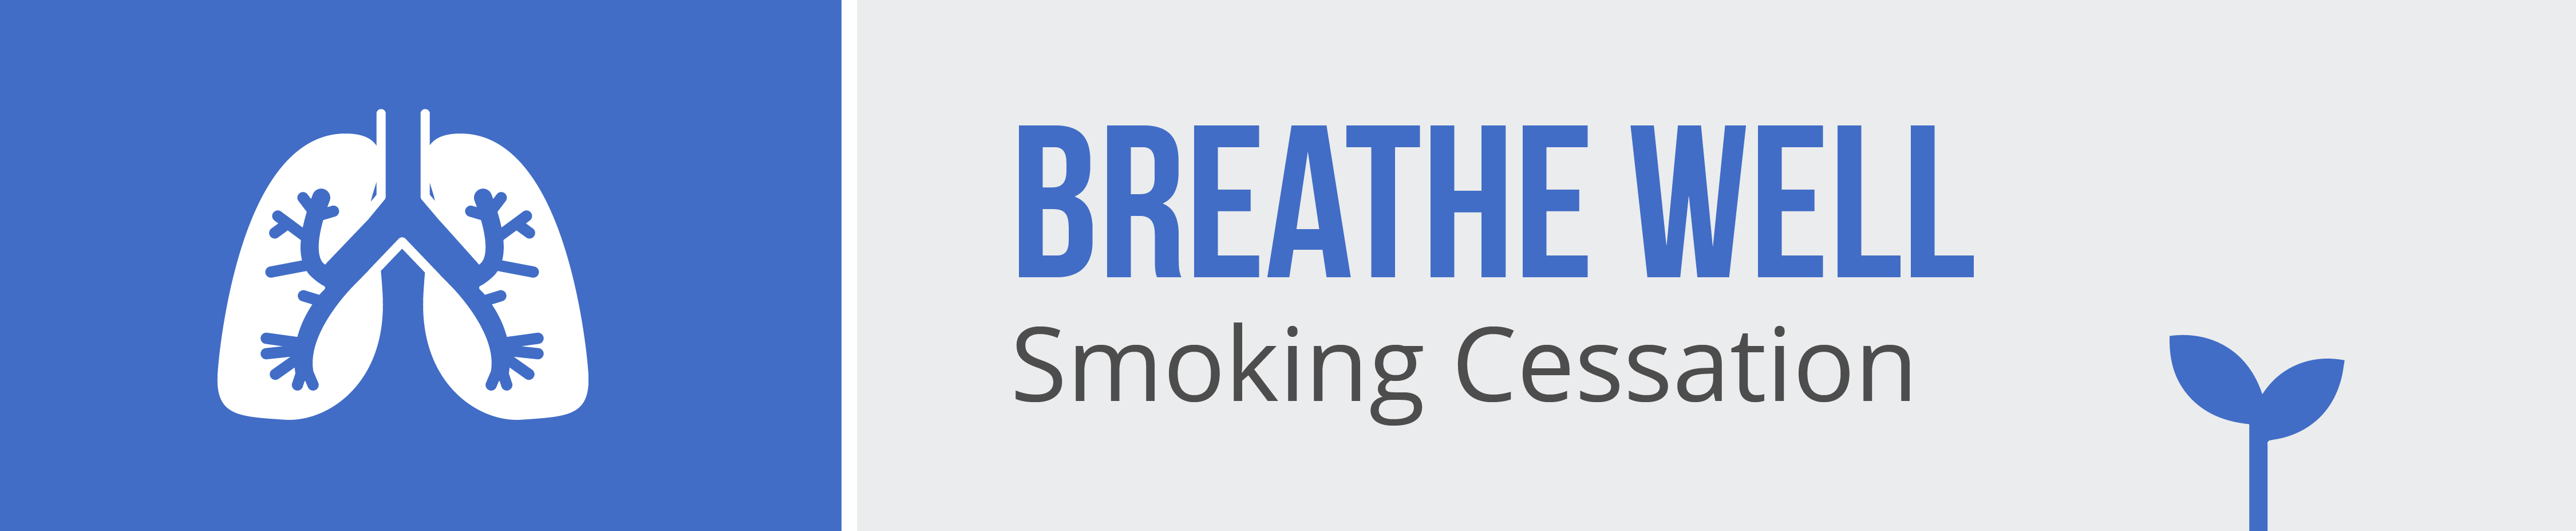 Breathe_Well_Banner_2018.png